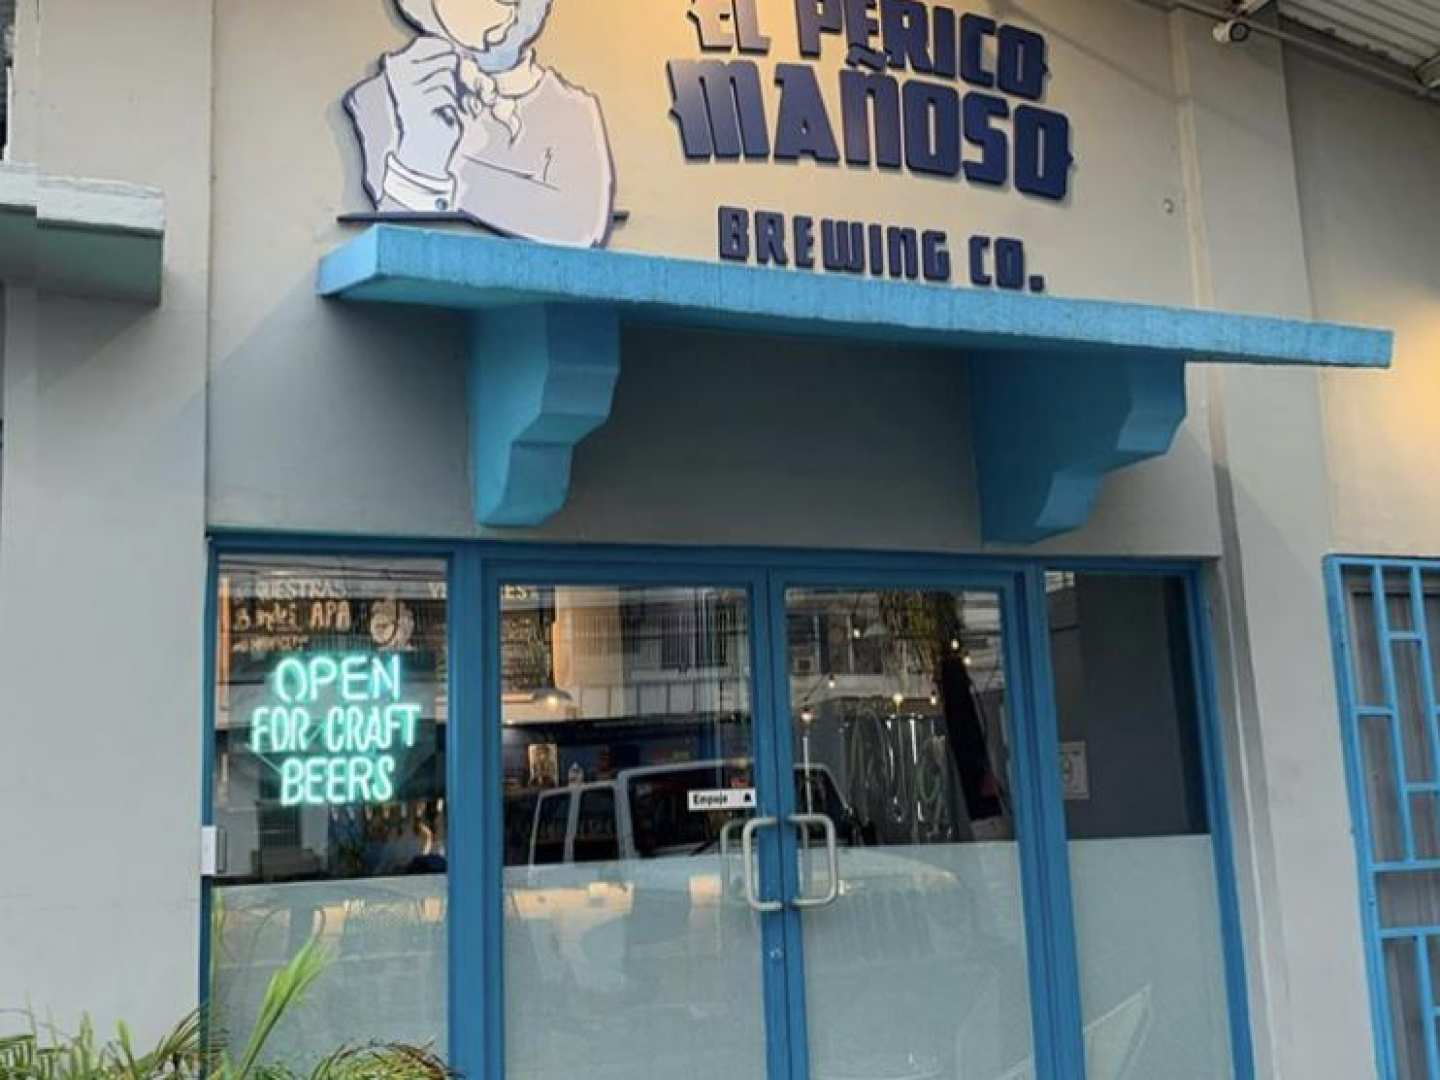 El Perico Mañoso Brewing Co